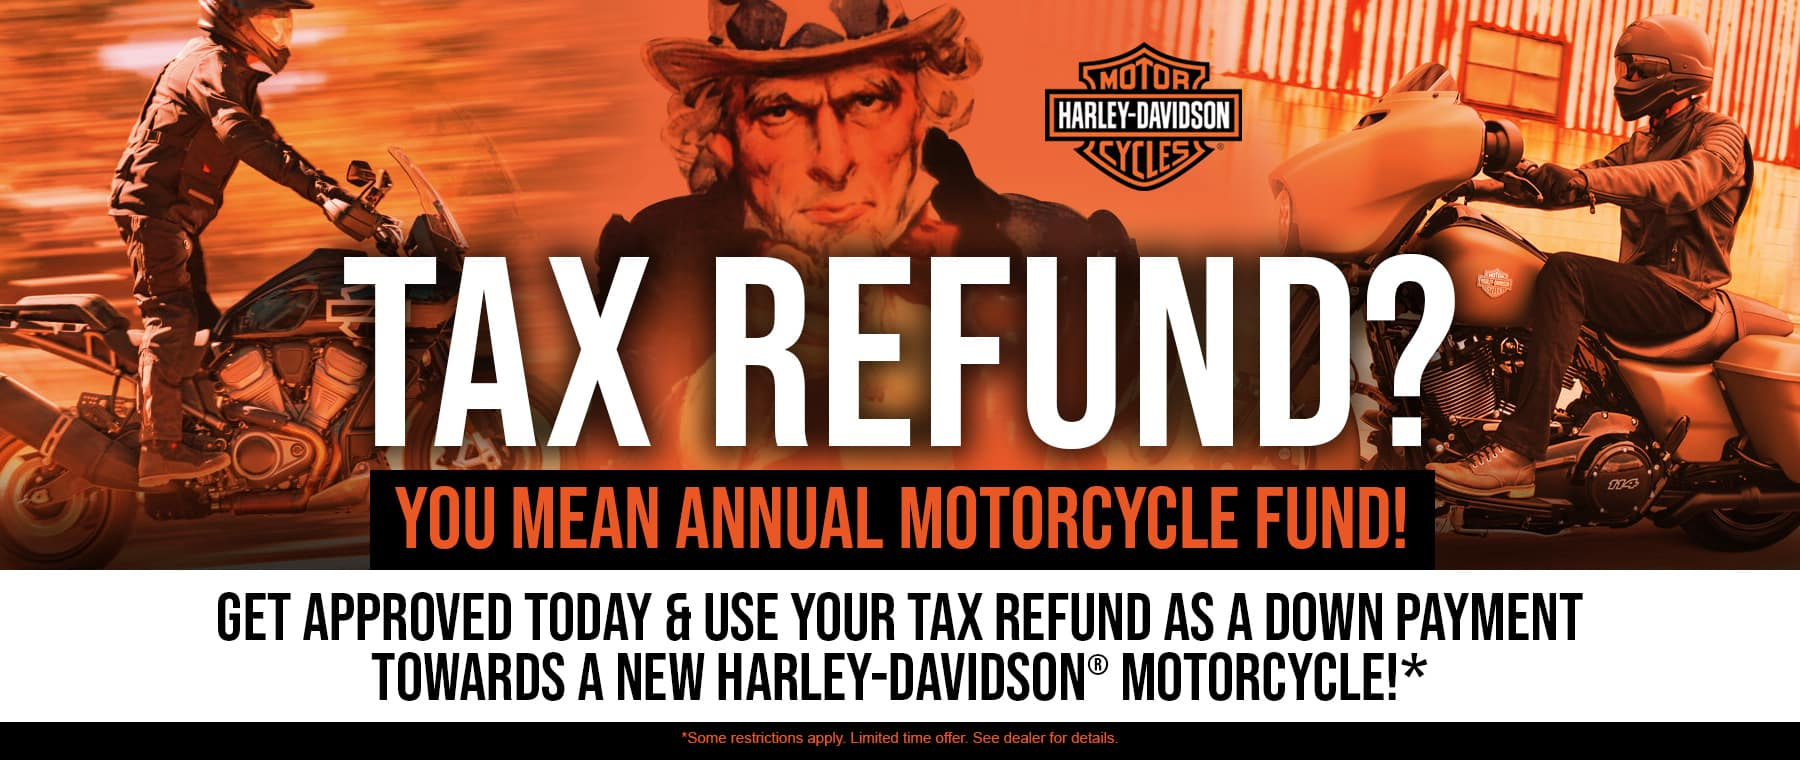 HD_Tax_refund_rot_1800x760